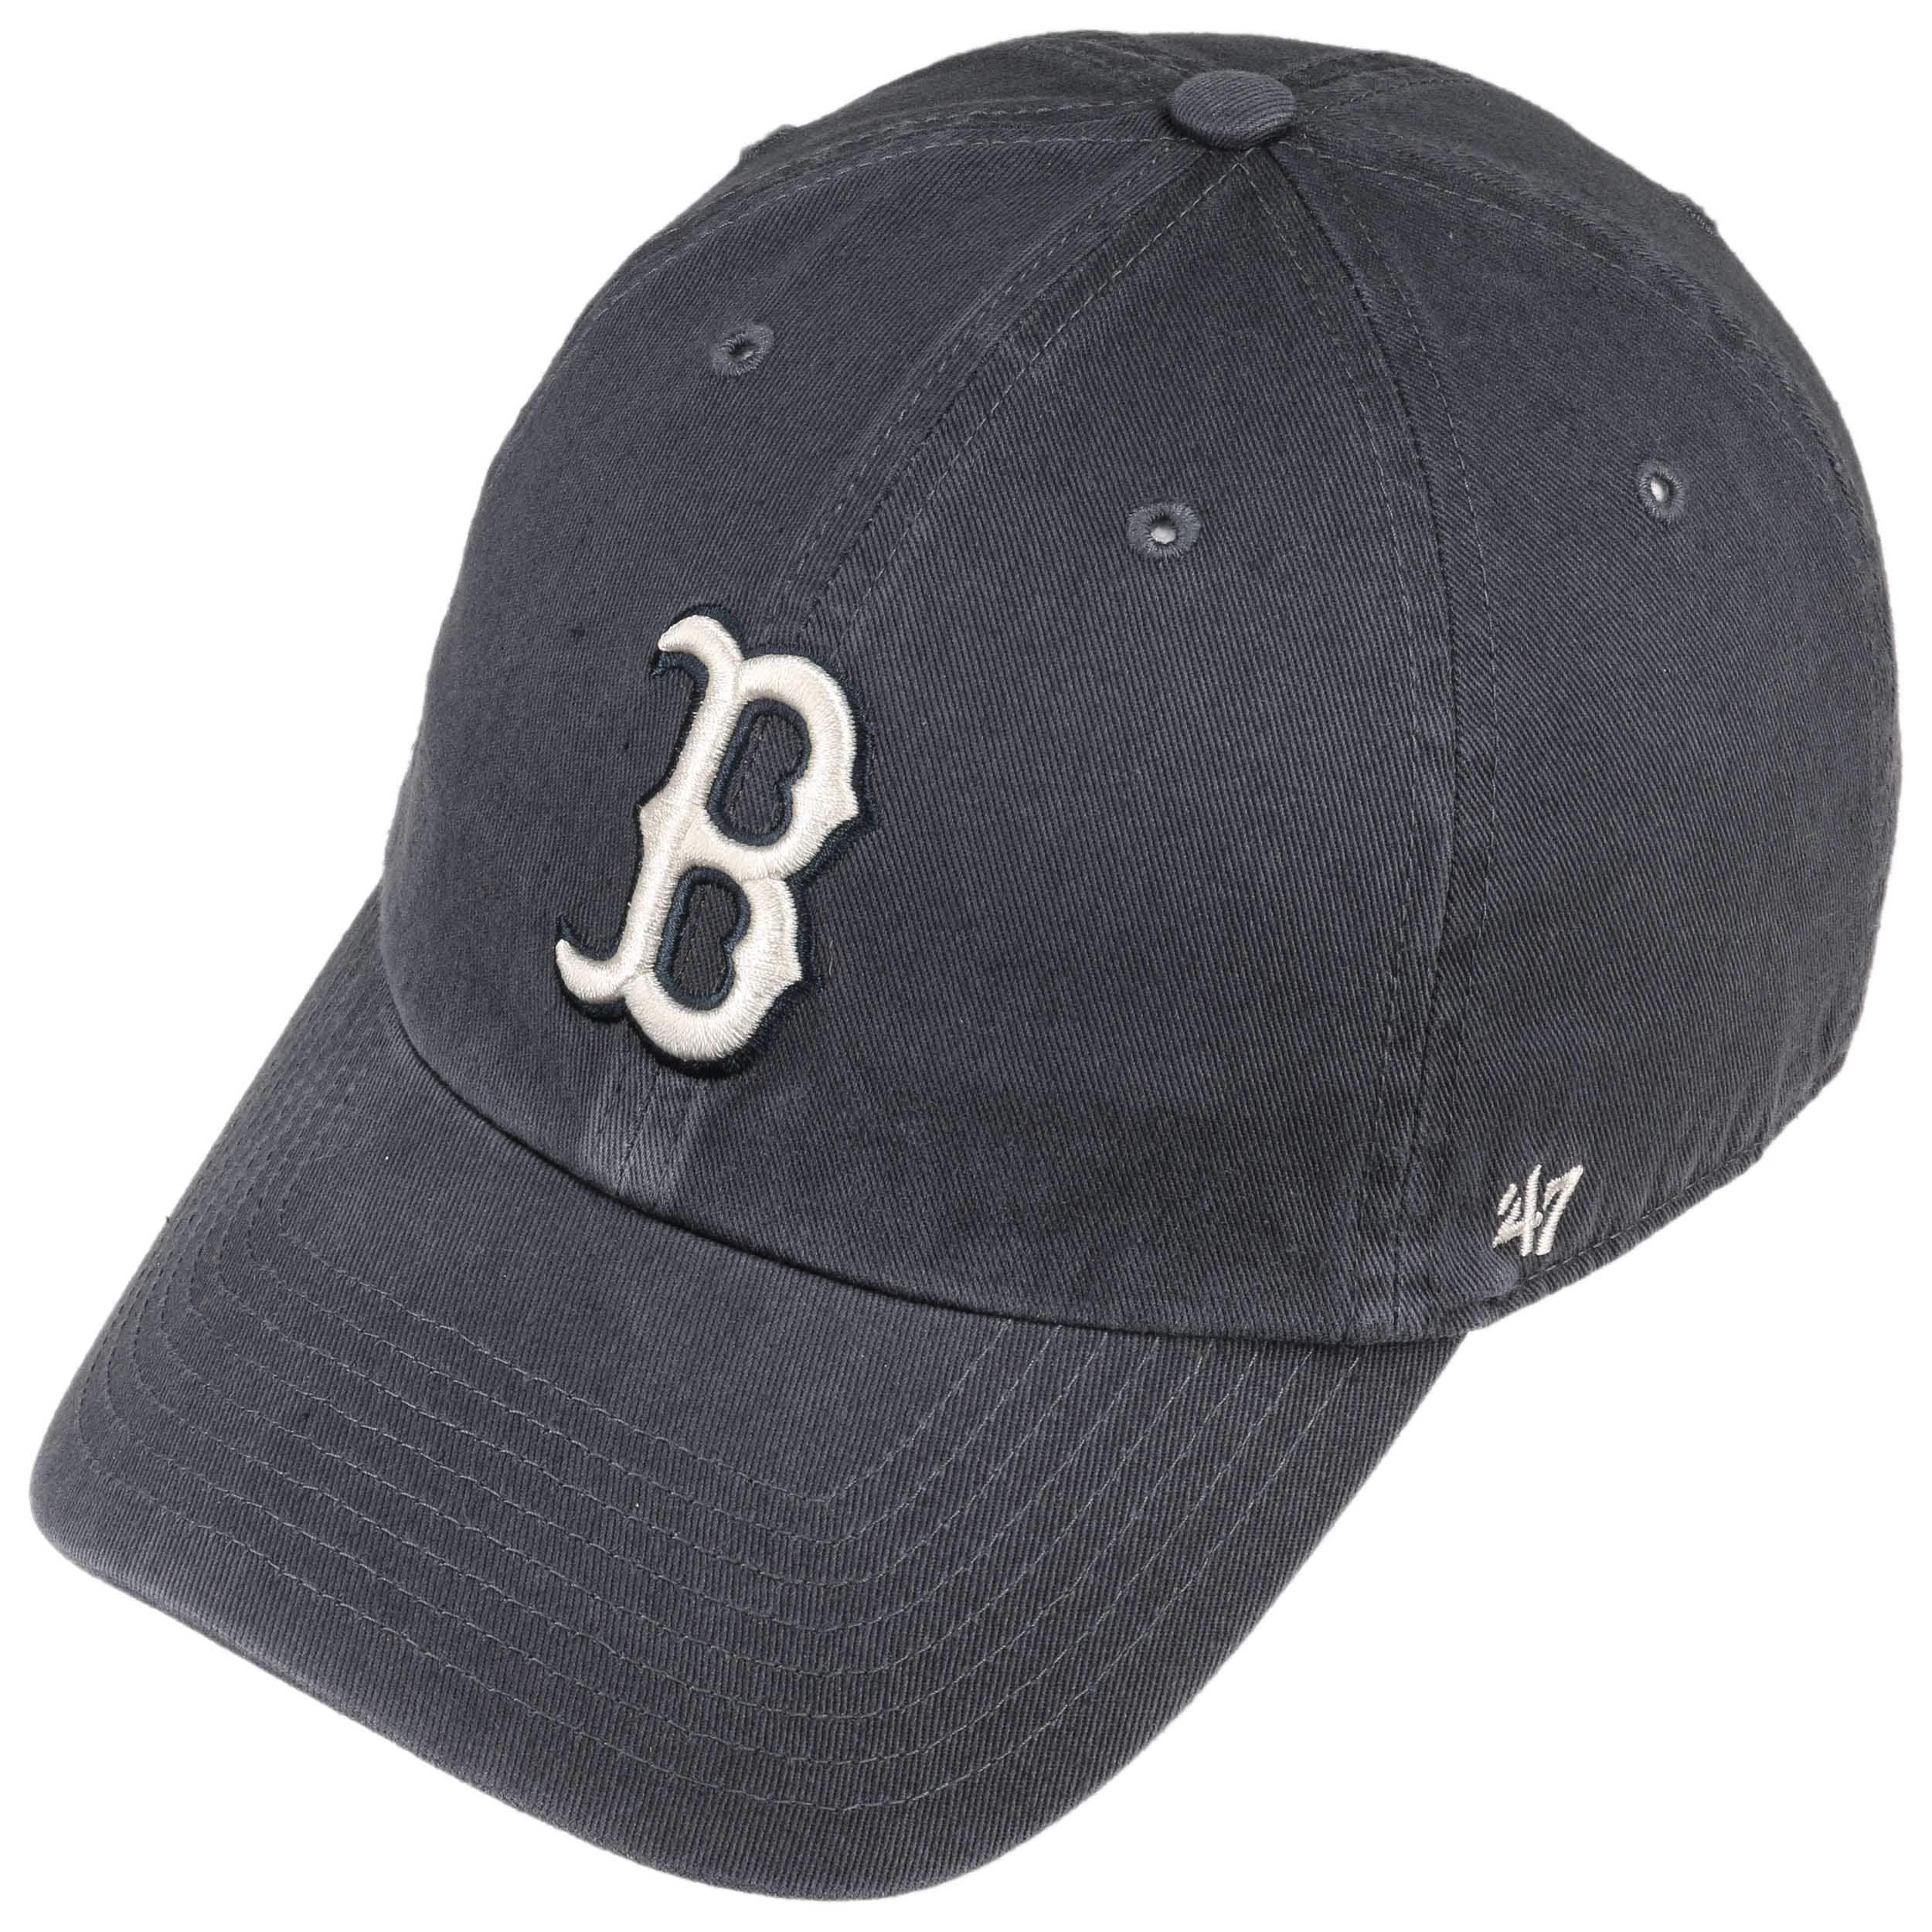 Clean Up Vintage Red Sox Cap by 47 Brand - blue 1 ... f53b1184b03